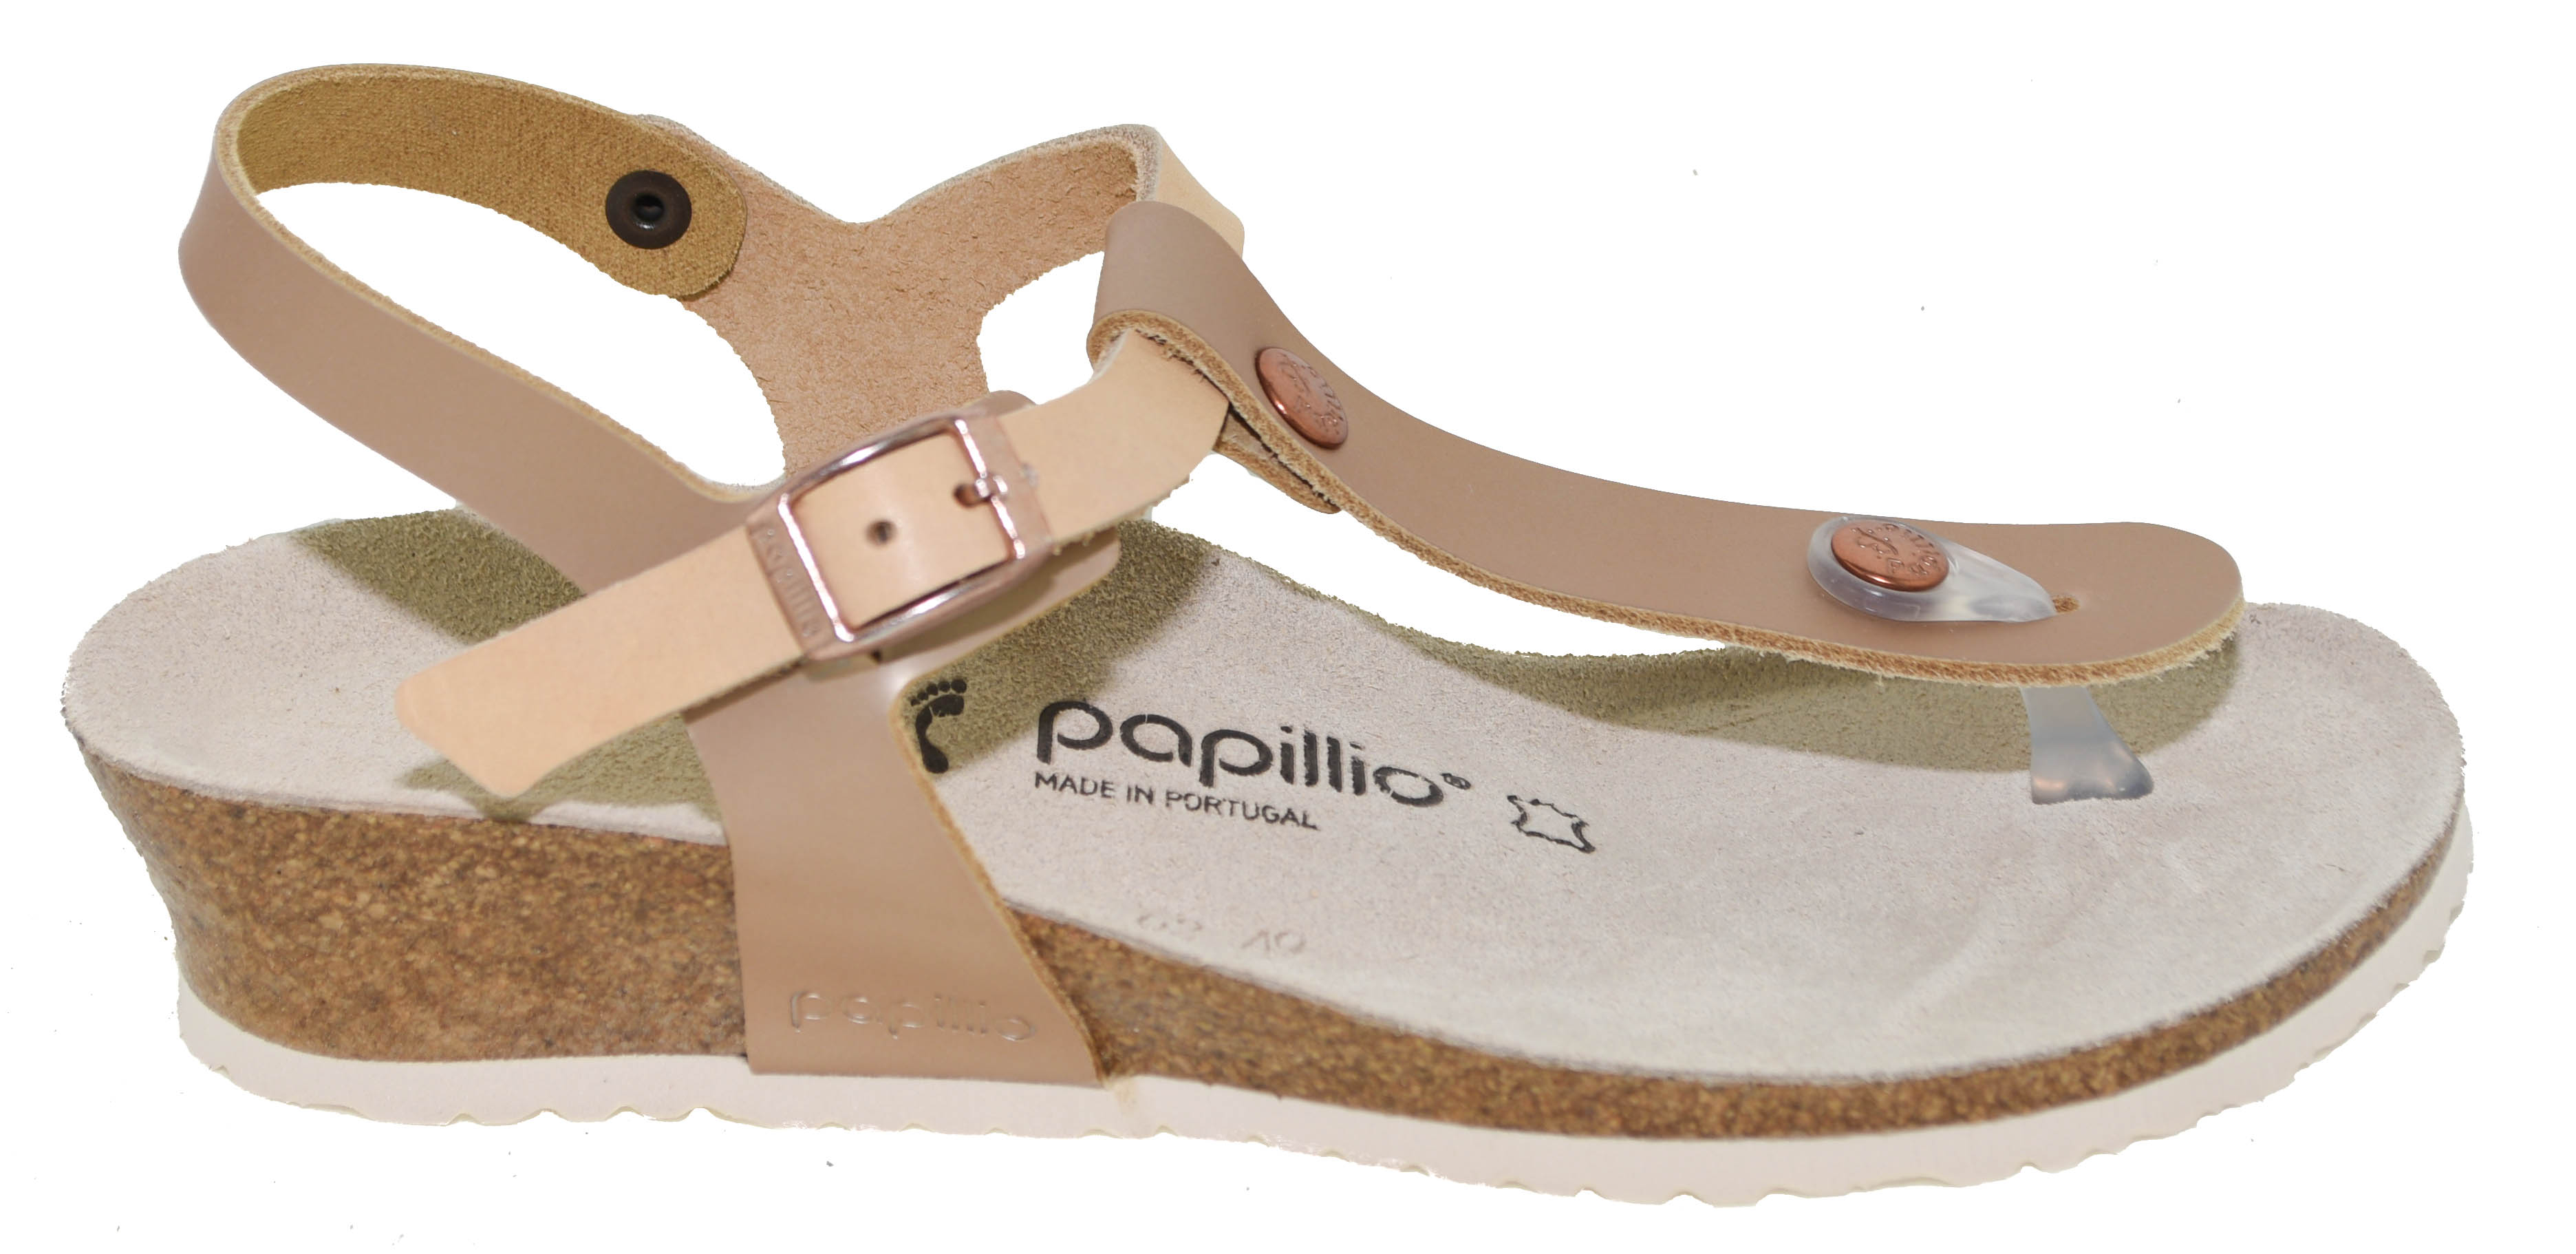 a7ce325bc7e6 Birkenstock Papillio Women s Ashley Sandal Frosted Metallic Rose Style  1008936